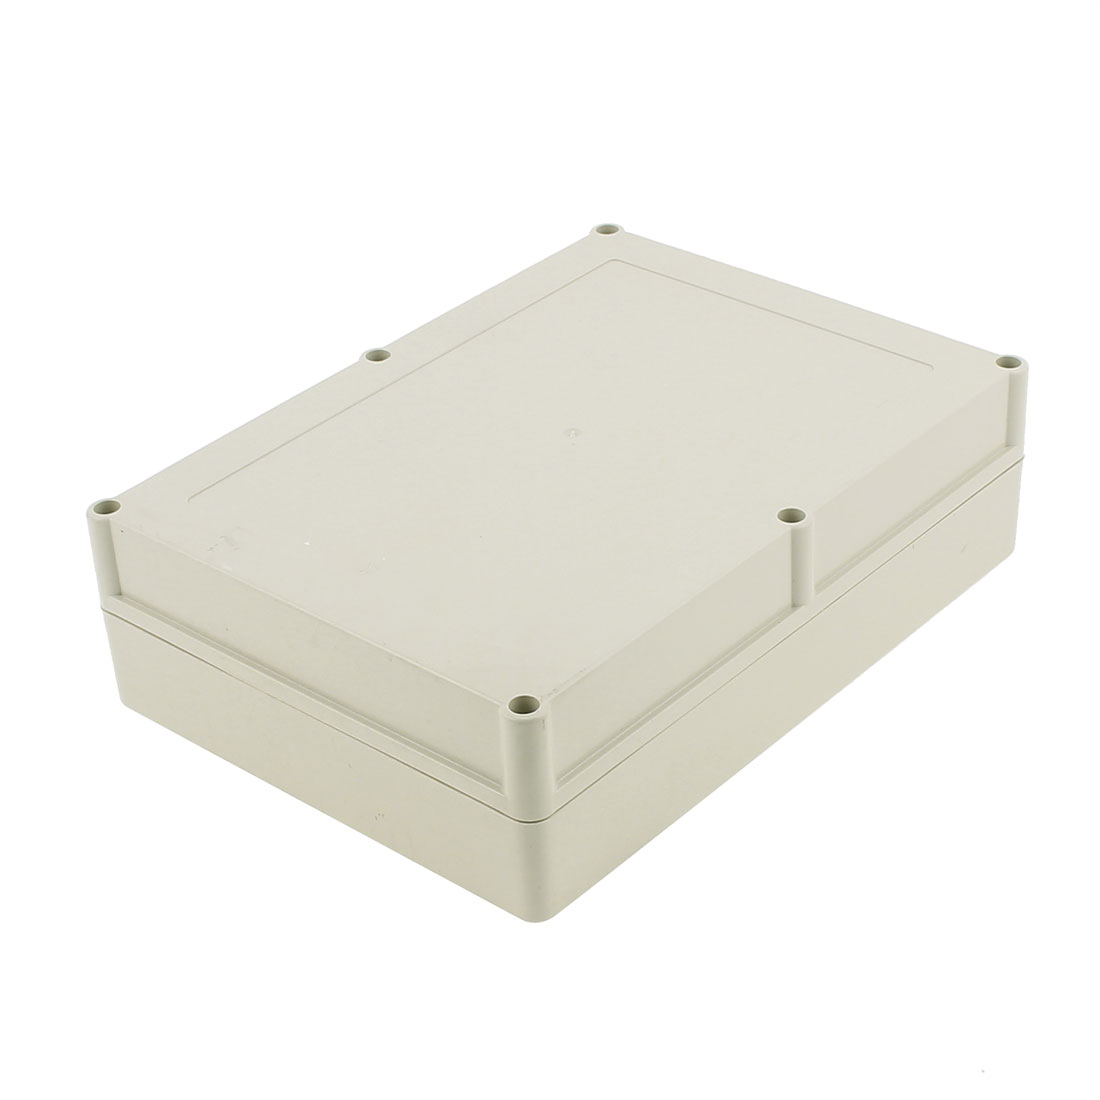 240 x 175 x 68mm Dustproof IP65 Junction Box Terminal Connecting Box Enclosure